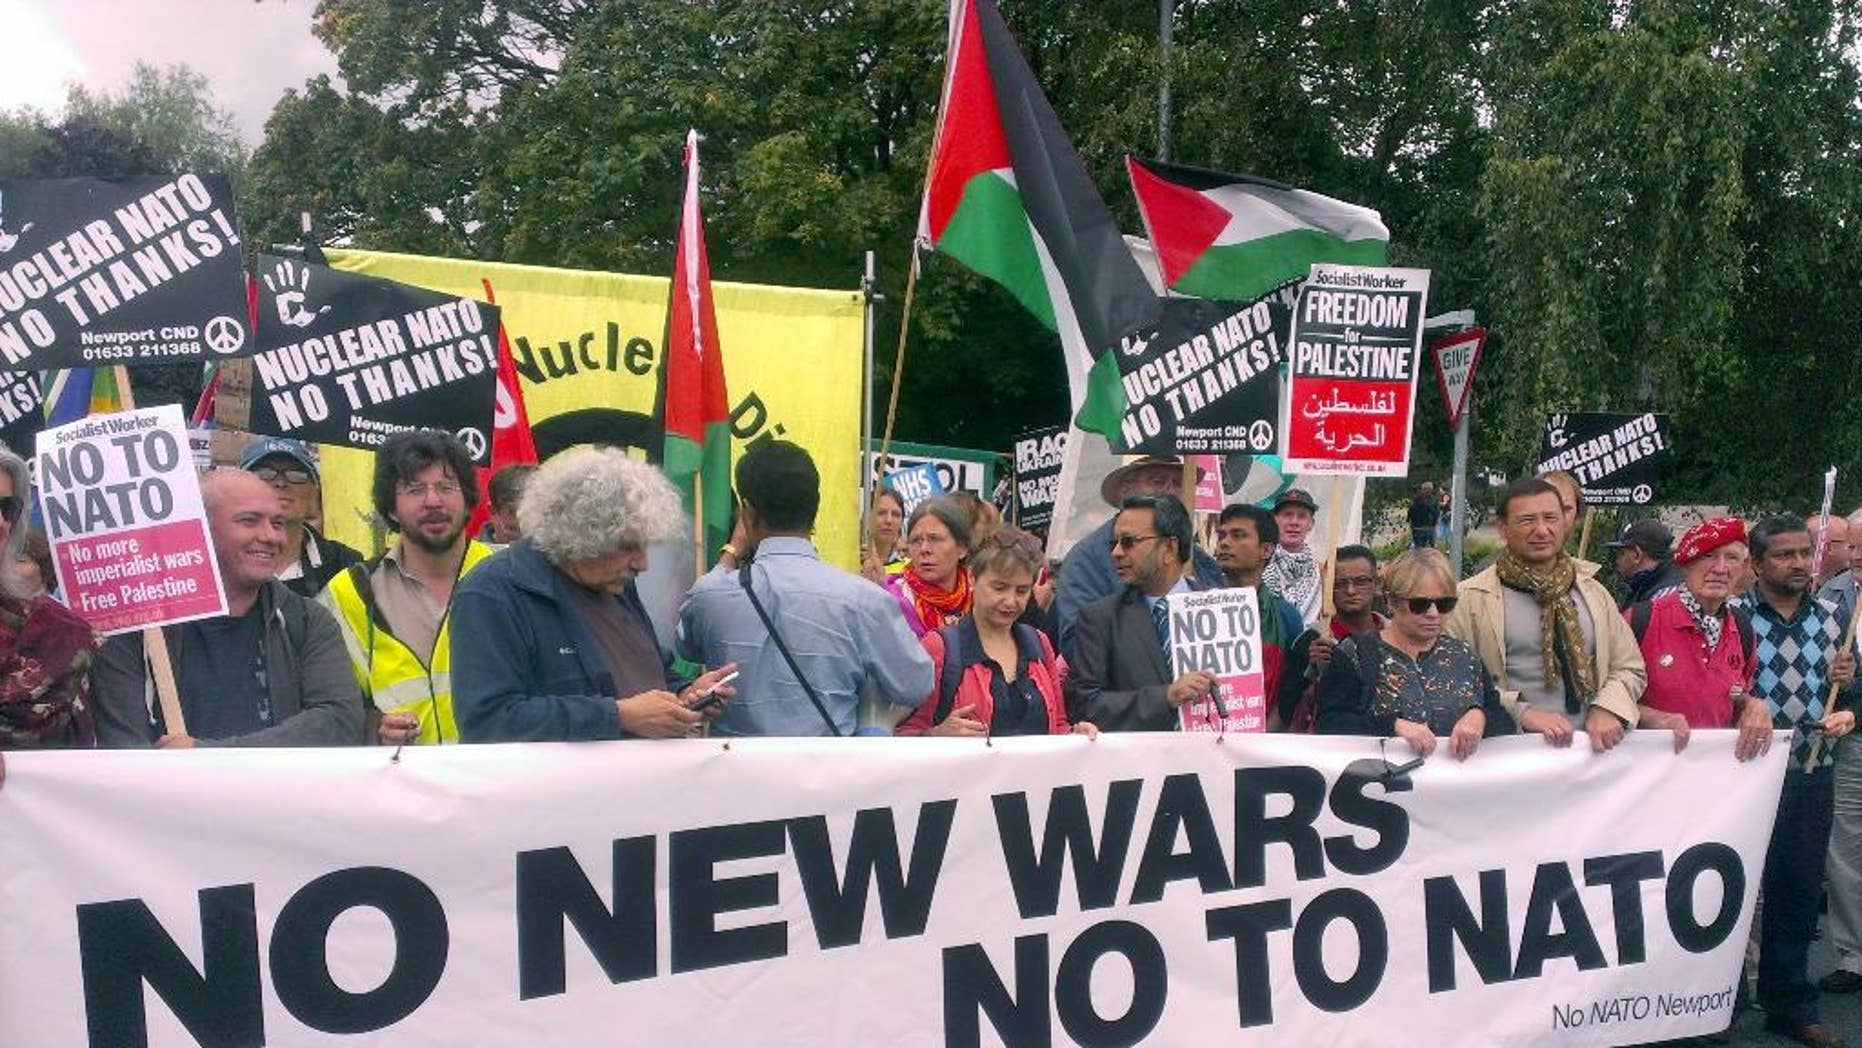 """Supporters take part in the 'No to NATO' protest march in Newport, south Wales, Saturday, Aug. 30, 2014. Around 1,000 protesters have marched through the streets of Newport ahead of next week's NATO summit. More than 150 heads of state and ministers will attend the two-day event at Newport's Celtic Manor Resort. The event will be """"uncharted territory"""" for police - while Wales' First Minister Carwyn Jones has said it will be """"momentous"""" in his country's history. However, its presence in the principality - and the UK - has been met with strong opposition from a number of anti-war groups as well as left-wing organizations. A large crowd gathered outside Newport Crown Court at around midday before going on a march through the Welsh city. As well as strong Welsh contingent, protesters came from as far as Washington, Belgium, France and Ireland. (AP Photo/Benjamin Wright, PA Wire)     UNITED KINGDOM OUT    -   NO SALES    -    NO ARCHIVES"""